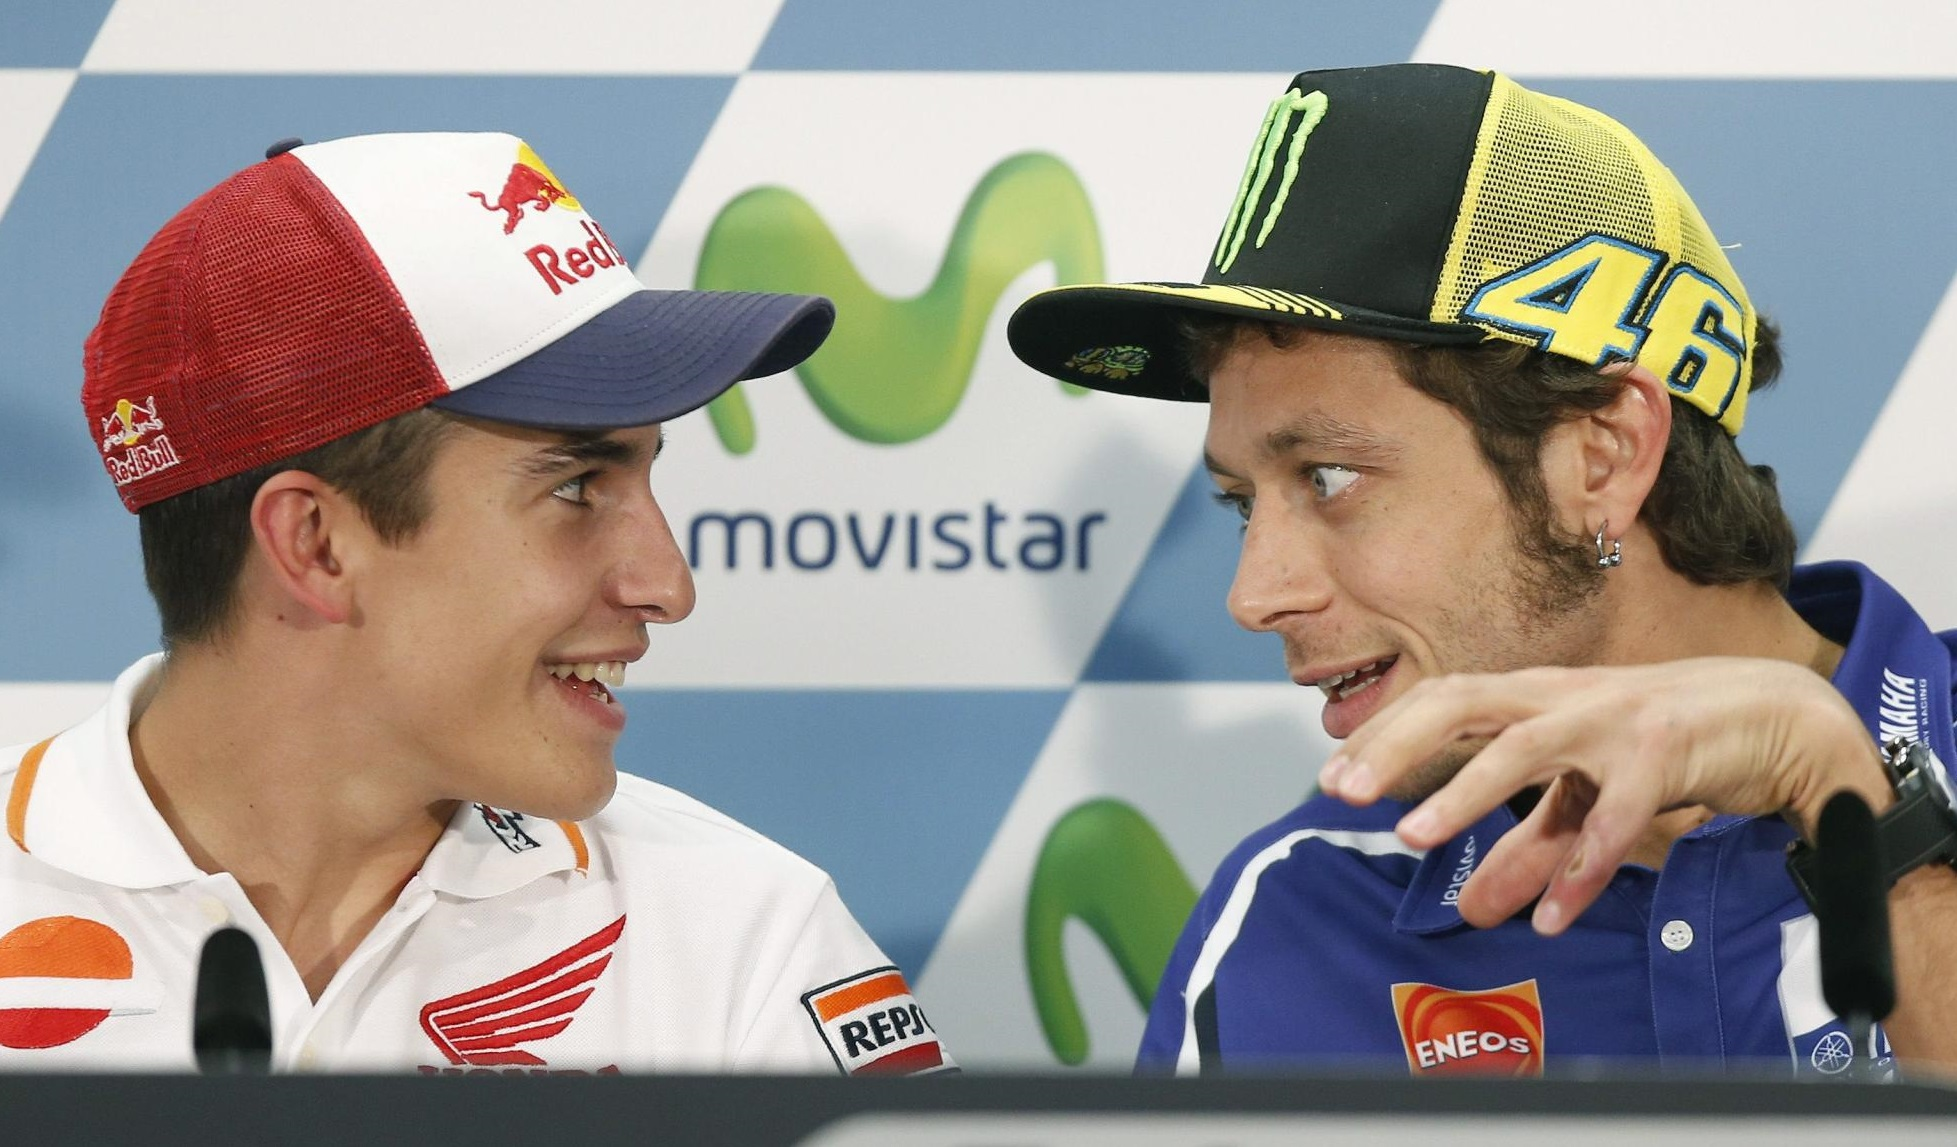 Italian MotoGP rider Valentino Rossi (R) of the Movistar Yamaha team talks with Spanish Marc Marquez (L) of the Repsol Honda team, during a press conference held at Motorland circuit, in Alcaniz, Teruel, northern Spain, 25 September 2014. The Motorcycling Grand Prix of Aragon will take place at the Motorland circuit on 28 September 2014. EFE/ANDREU DALMAU